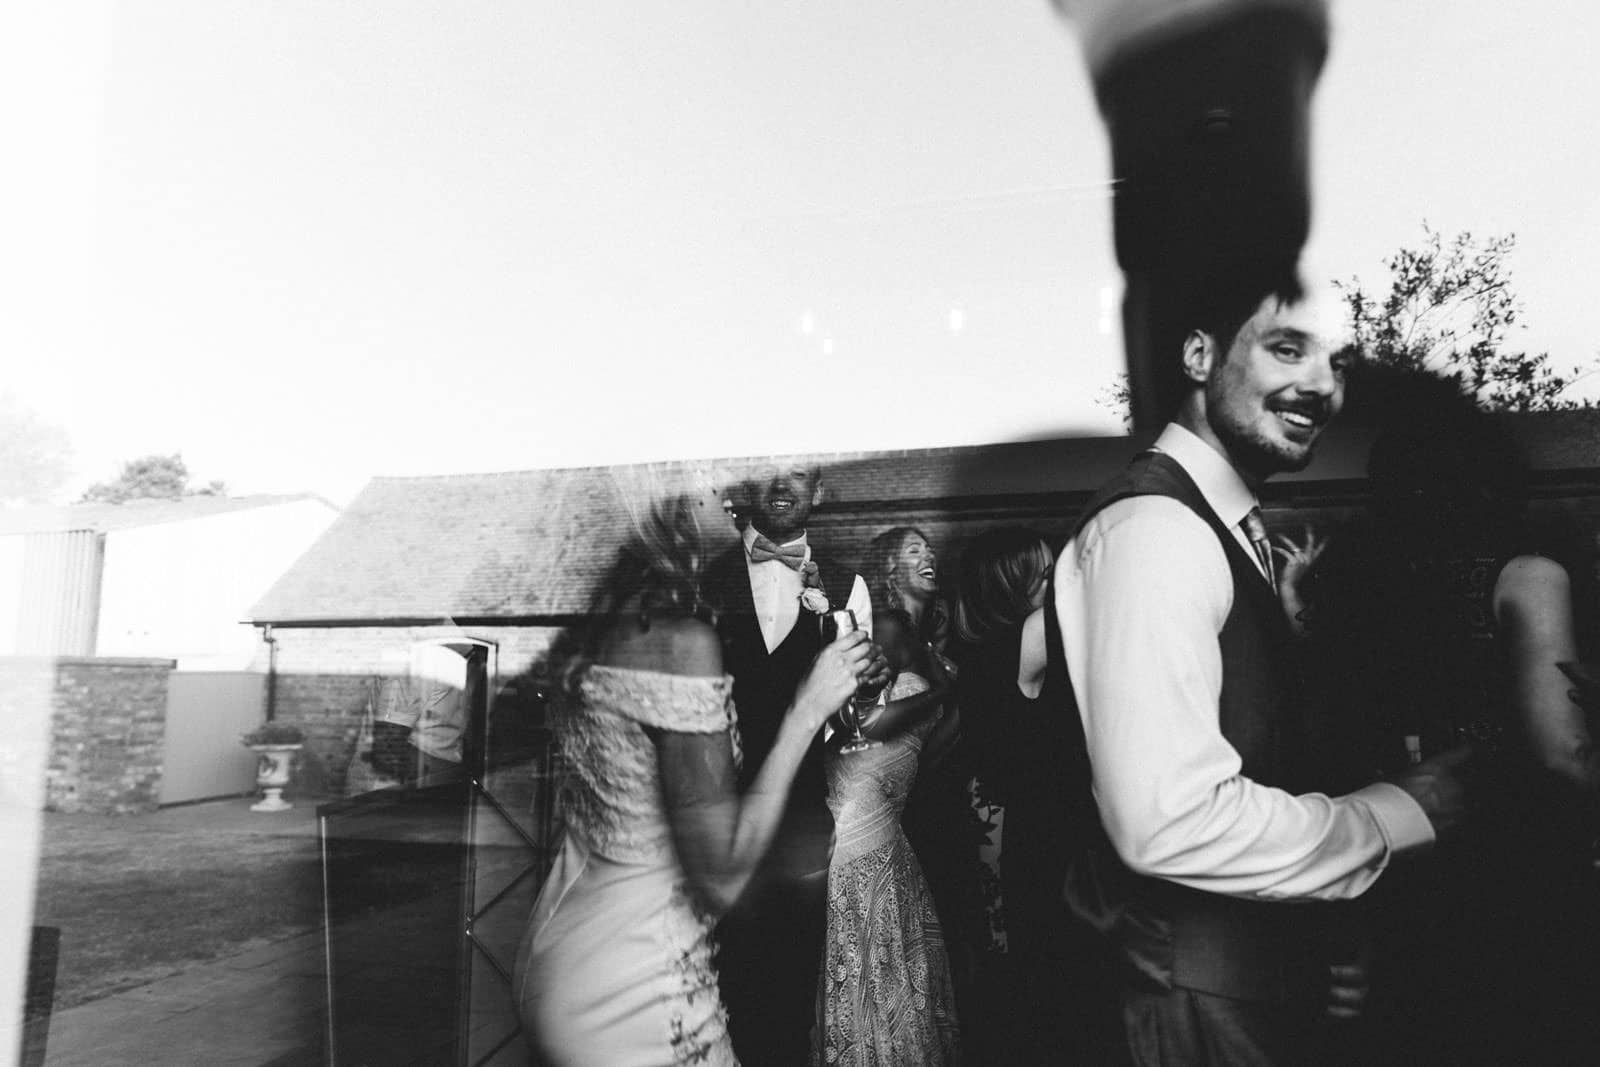 reflection of wedding guest in swallows nest barn